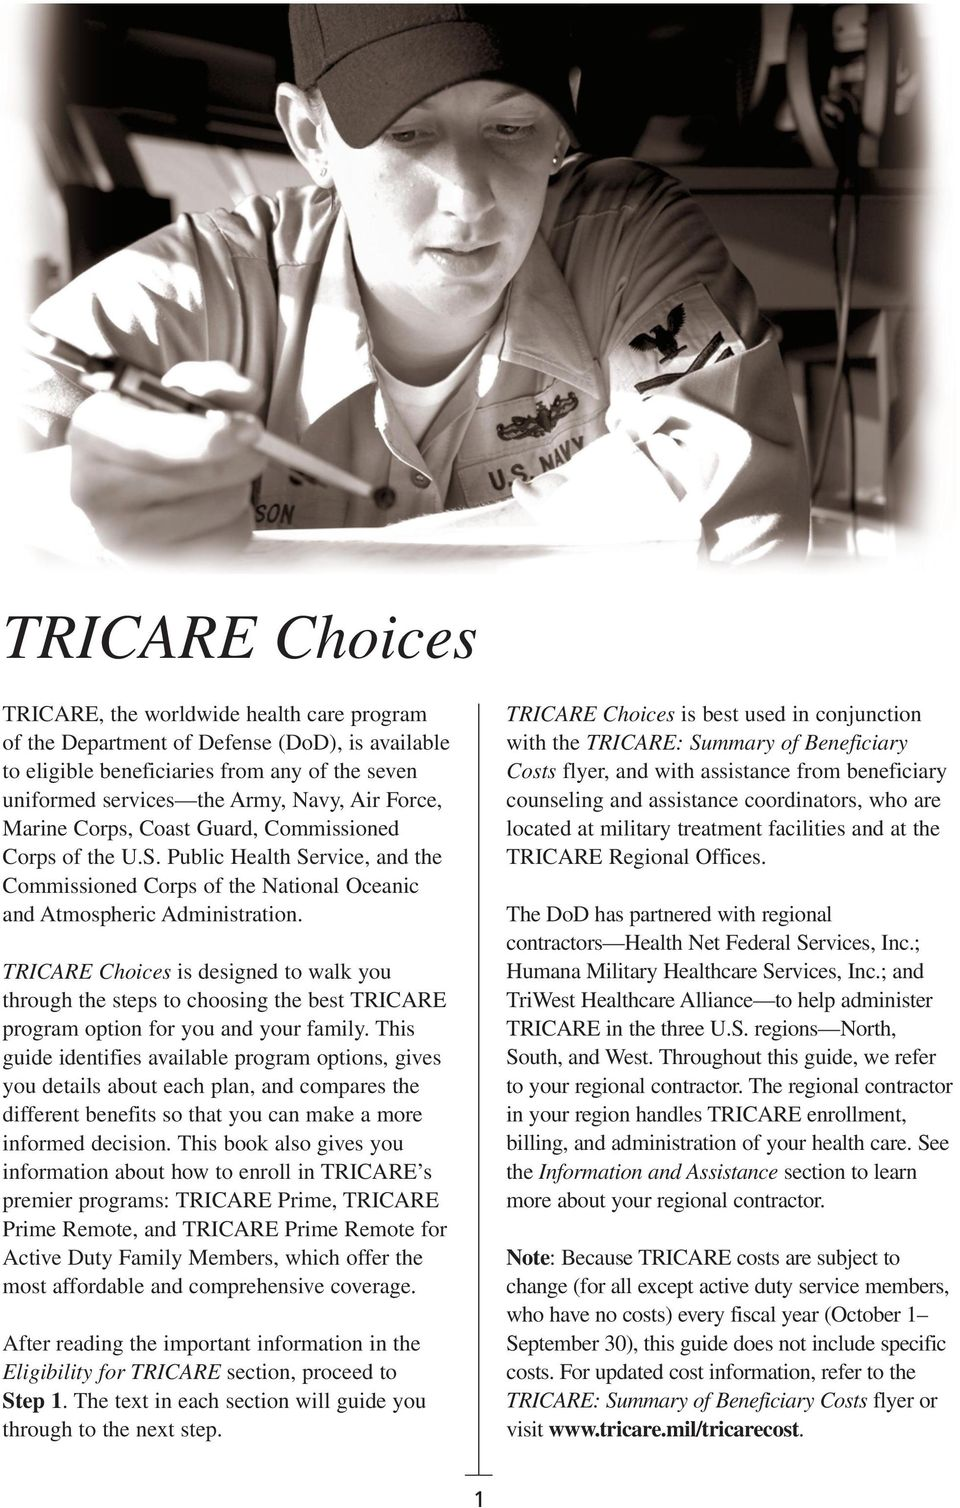 TRICARE Choices is designed to walk you through the steps to choosing the best TRICARE program option for you and your family.